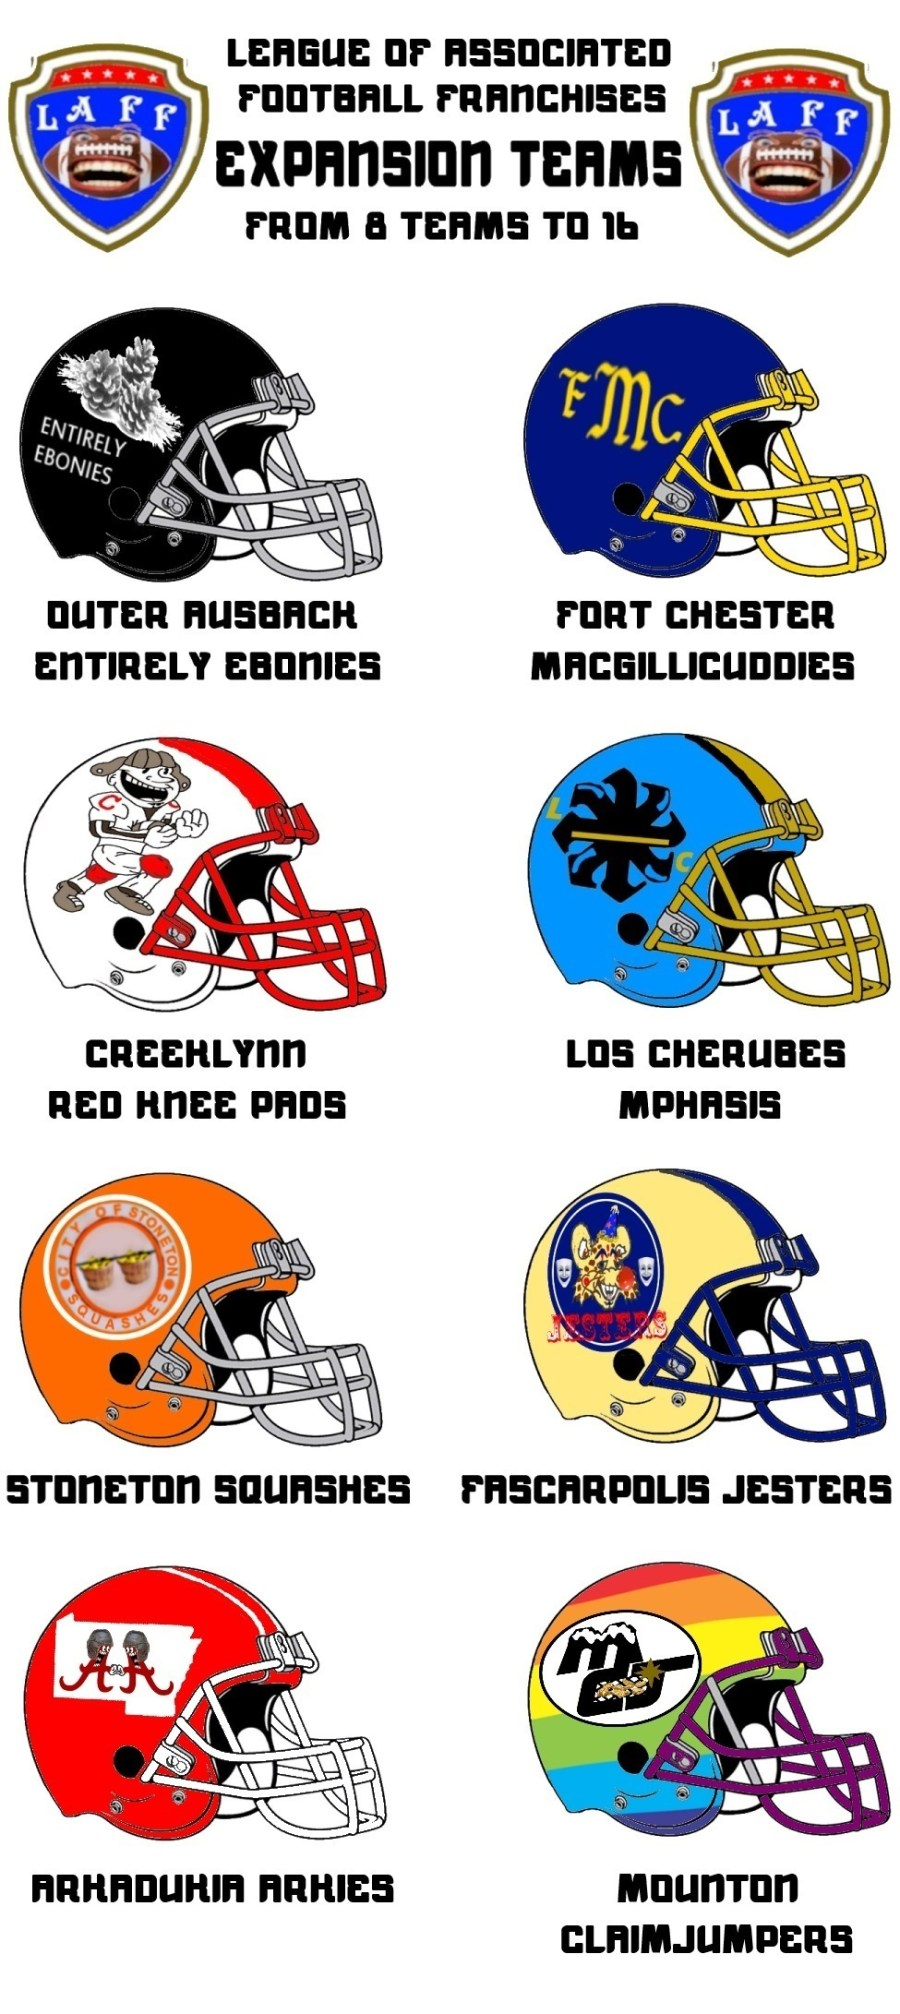 L.A.F.F. expansion teams (league goes from 8 teams to 16)